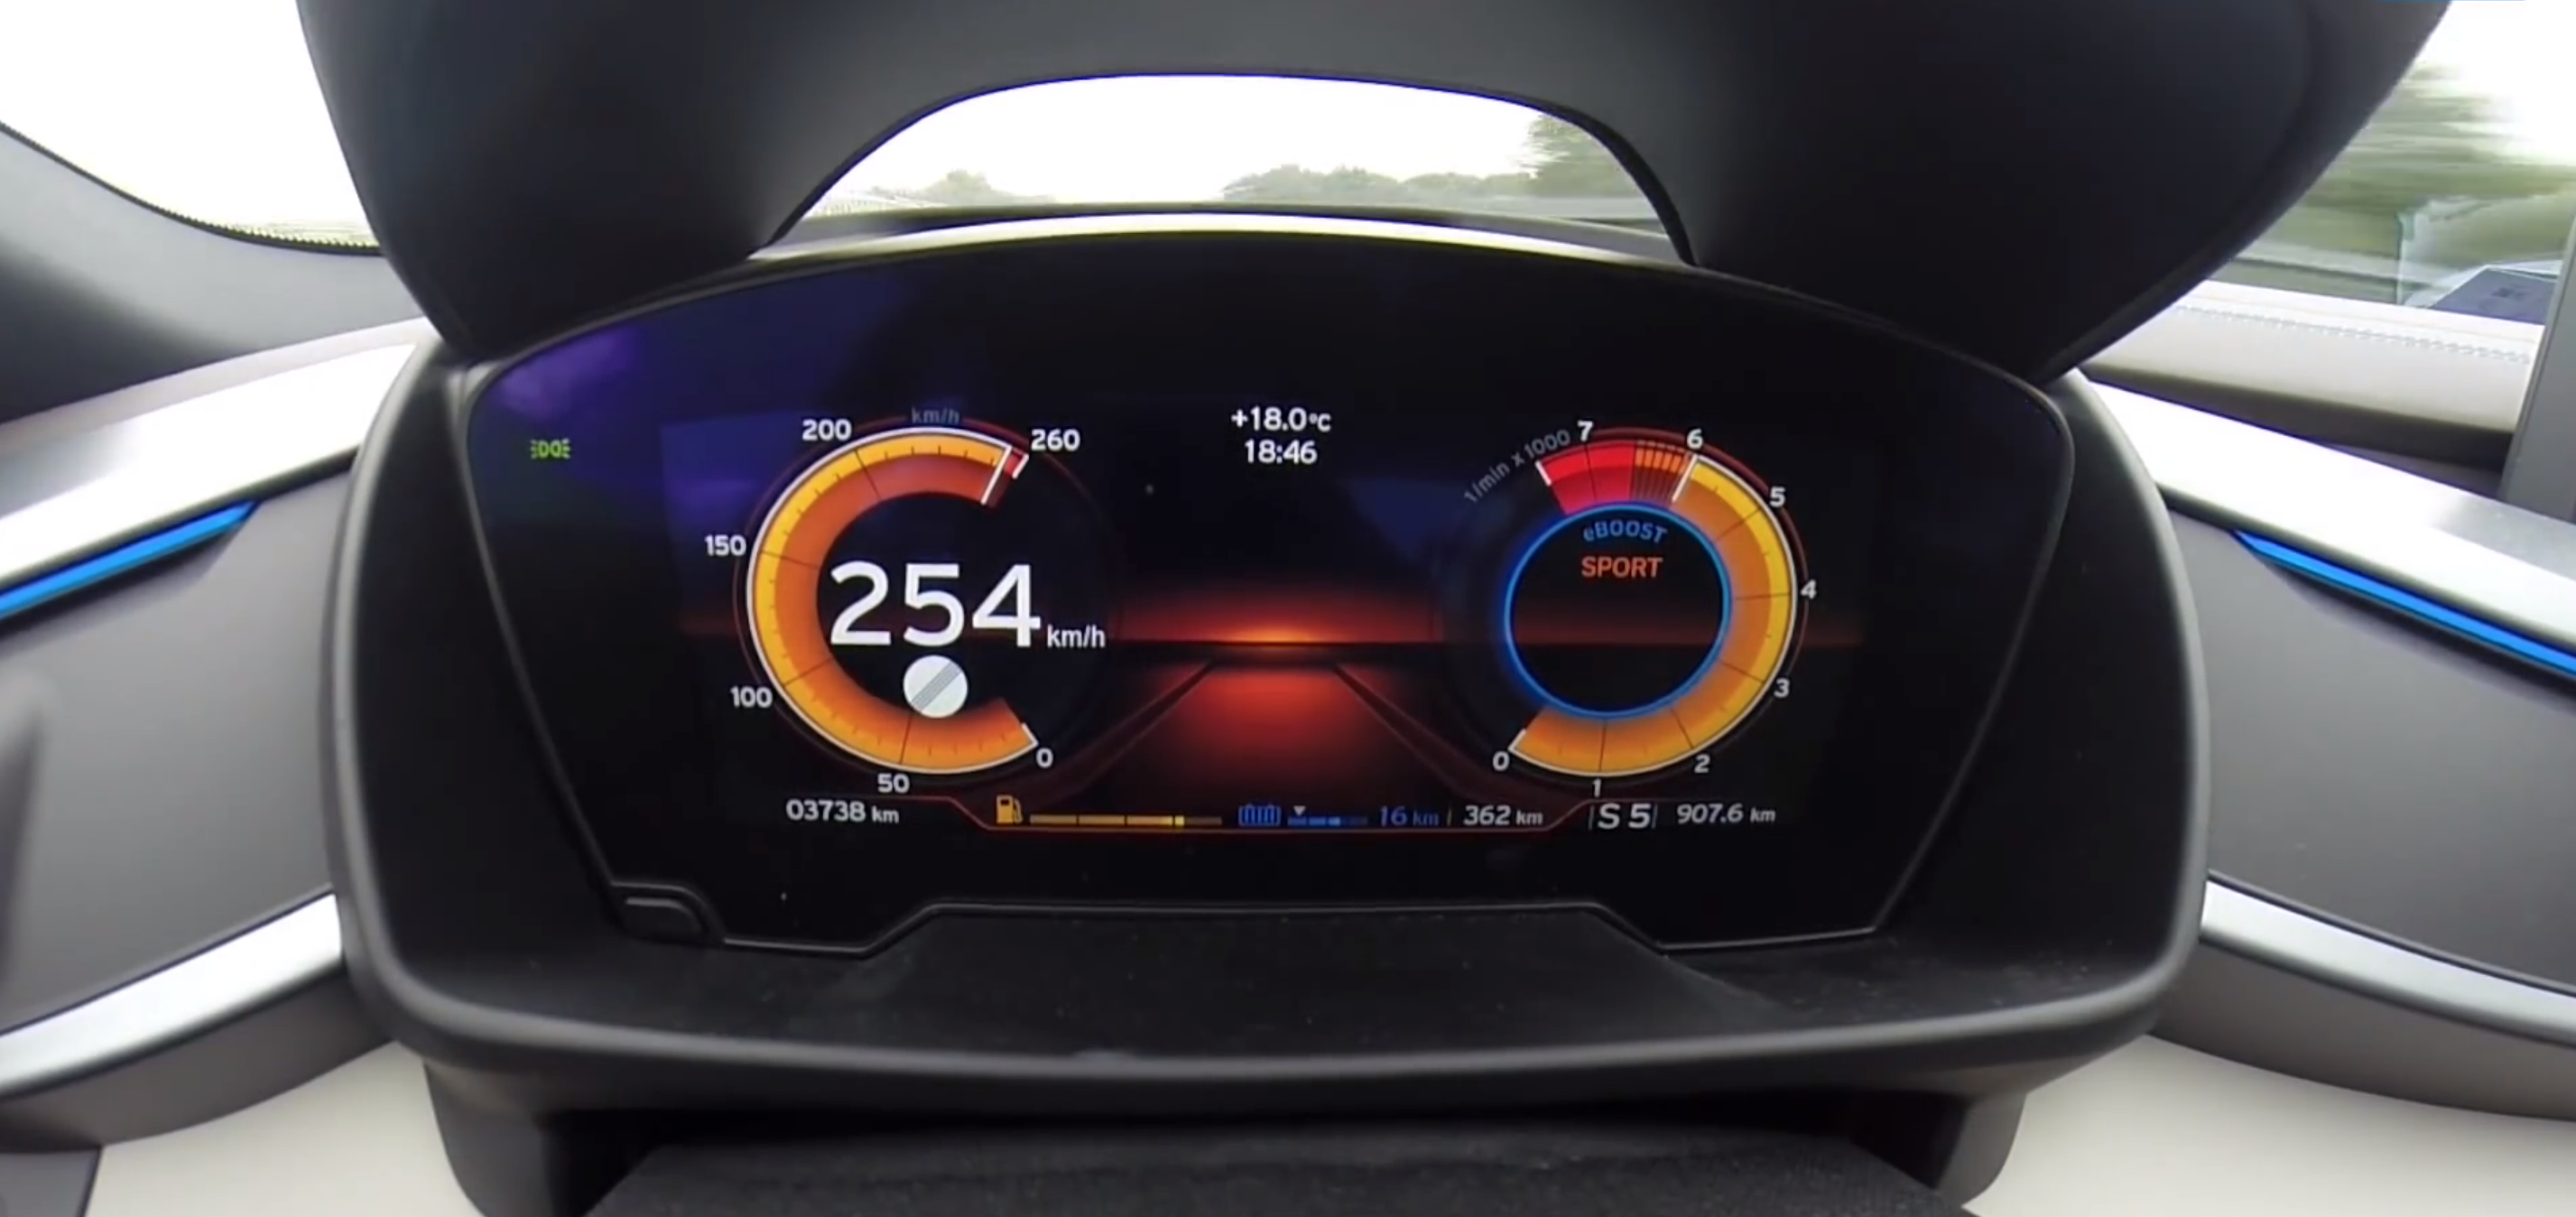 Bmw I8 Goes From 0 To 254 Km H